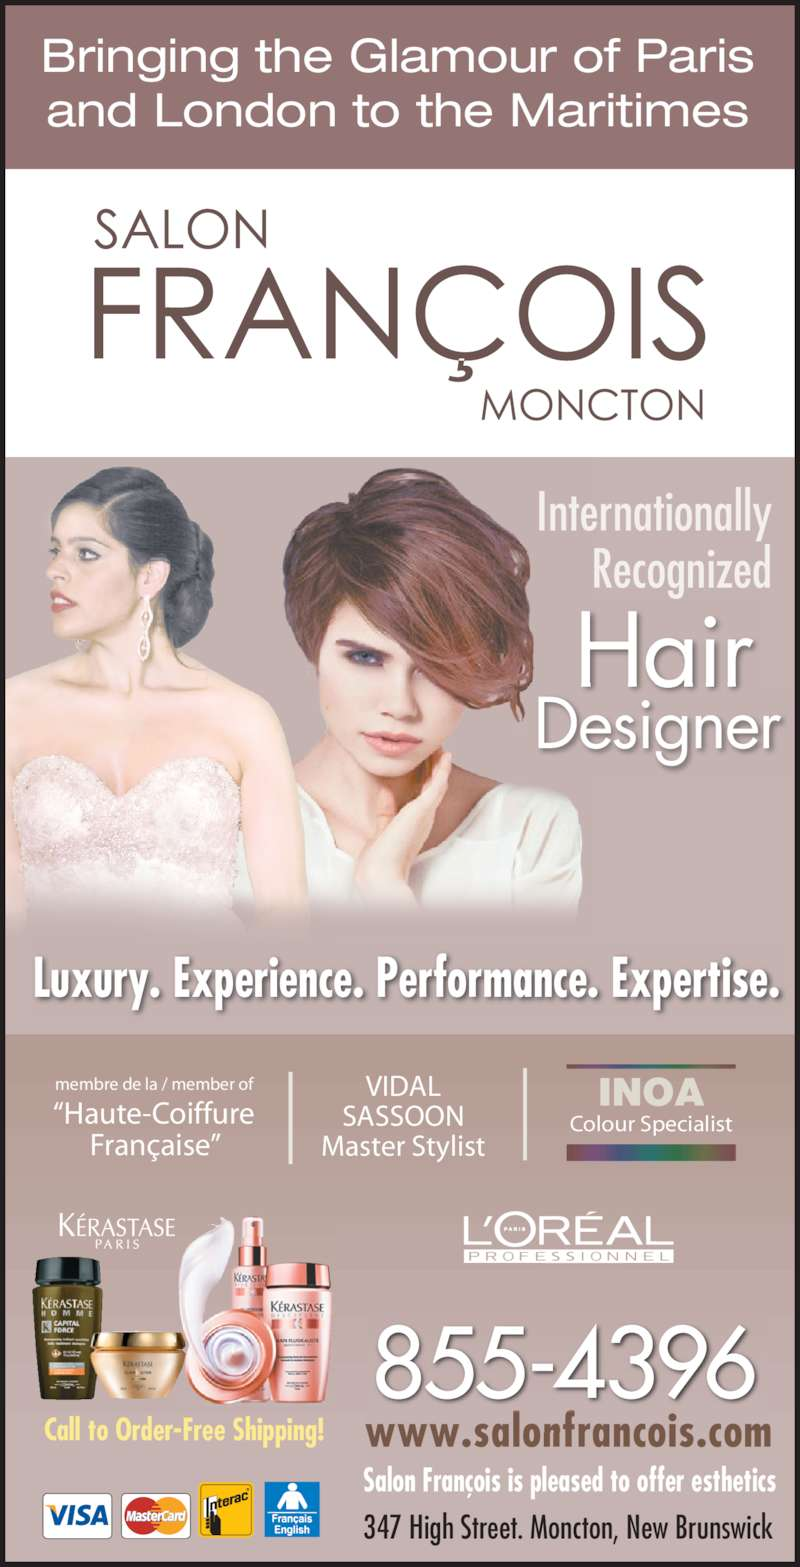 """Francois Beauty Salon (506-855-4396) - Display Ad - 347 High Street. Moncton, New Brunswick www.salonfrancois.com Internationally Recognized Bringing the Glamour of Paris and London to the Maritimes Luxury. Experience. Performance. Expertise. Salon François is pleased to offer esthetics """"Haute-Coiffure Française"""" membre de la / member of VIDAL SASSOON Master Stylist Colour Specialist INOA Call to Order-Free Shipping! 855-4396 Hair Designer"""